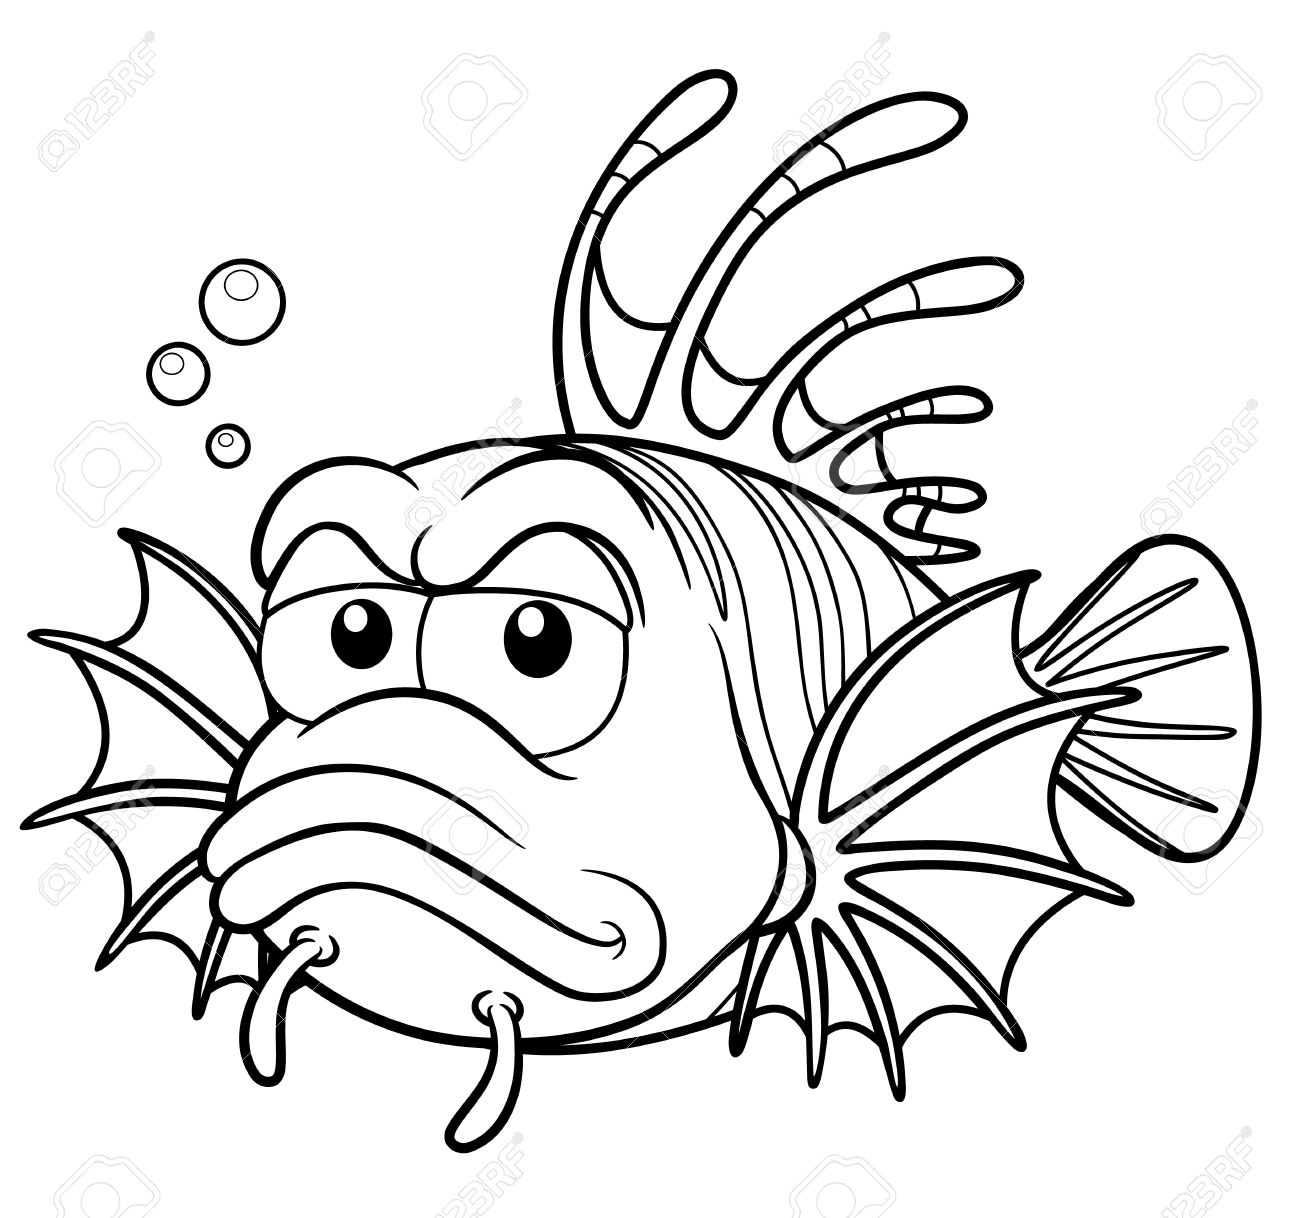 Lionfish Coloring Pages Bigking Keywords And Pictures